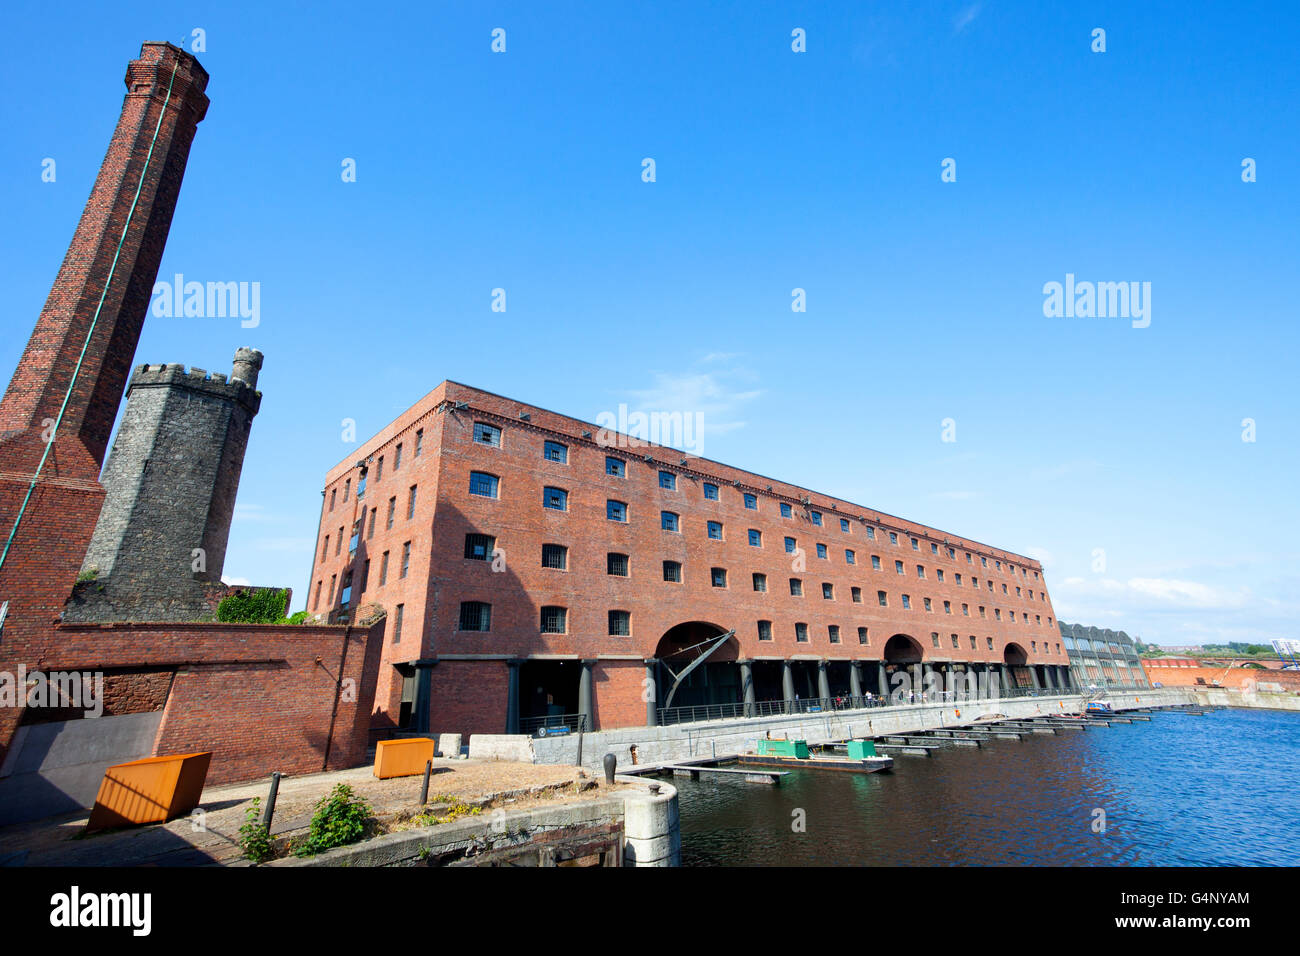 Titanic hotel in a converted 19th-century warehouse, Part of the redevelopment of the historic Stanley Dock complex, Stock Photo